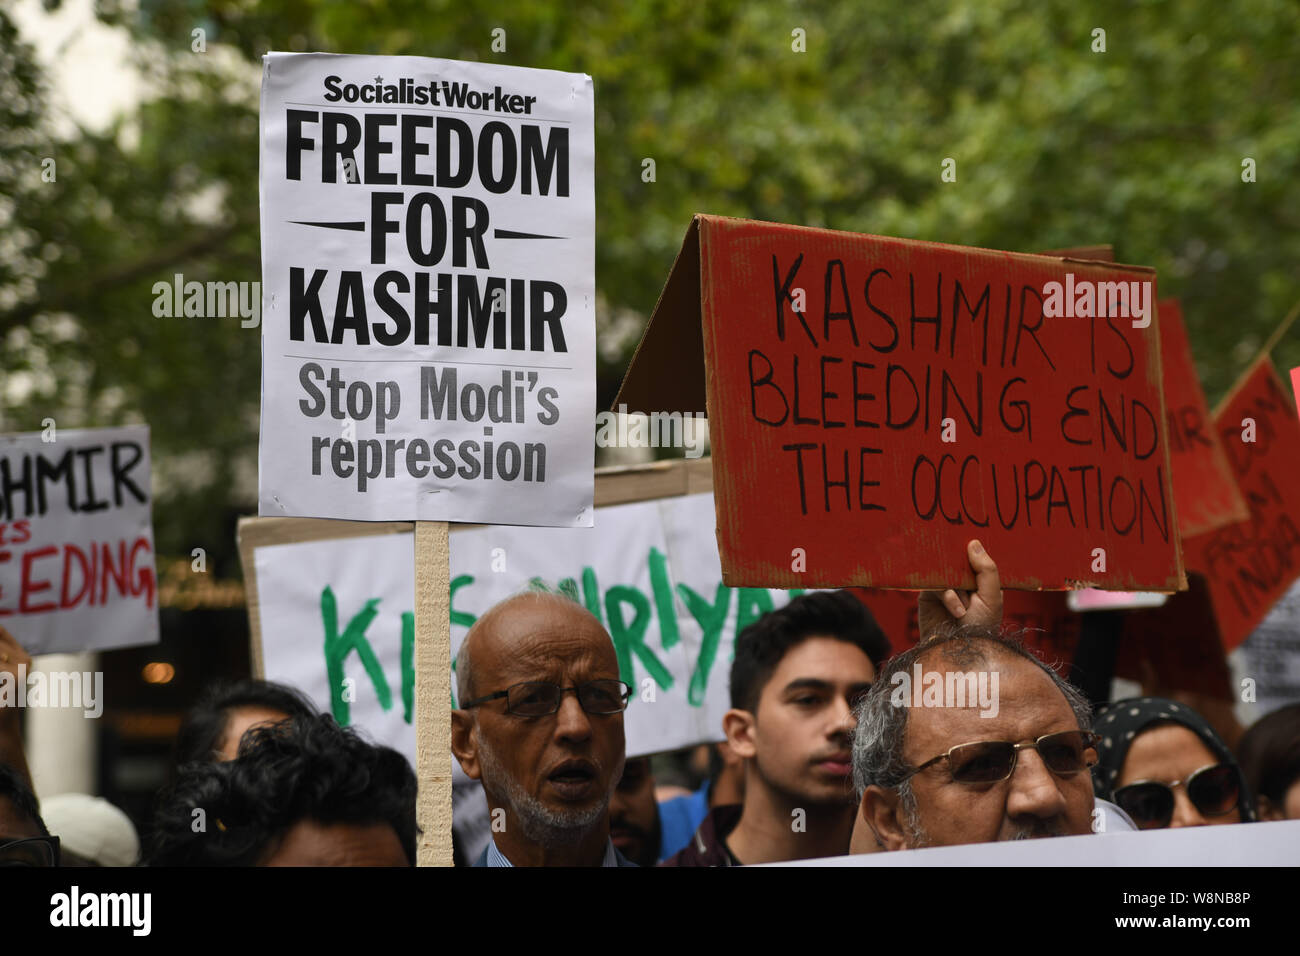 London, UK. 10th Aug, 2019. Hundreds Kashmiris protest India terrorists and Indian army occupation revoke article 370 and 35A. The same language Israel apartheid in Palestine outside India Embassy London, The entire world suffering, chaos and bloodshed is the creation of the west Pro-Demon-cracy, human rights and Freedom on the expenses of nonwhite people and nation on 20 August 2019, UK. Credit: Picture Capital/Alamy Live News Stock Photo